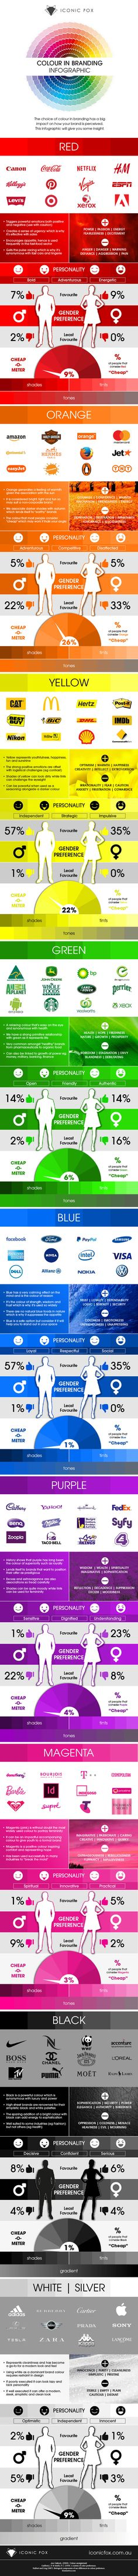 How to choose the right colors for your brand (Infographic)